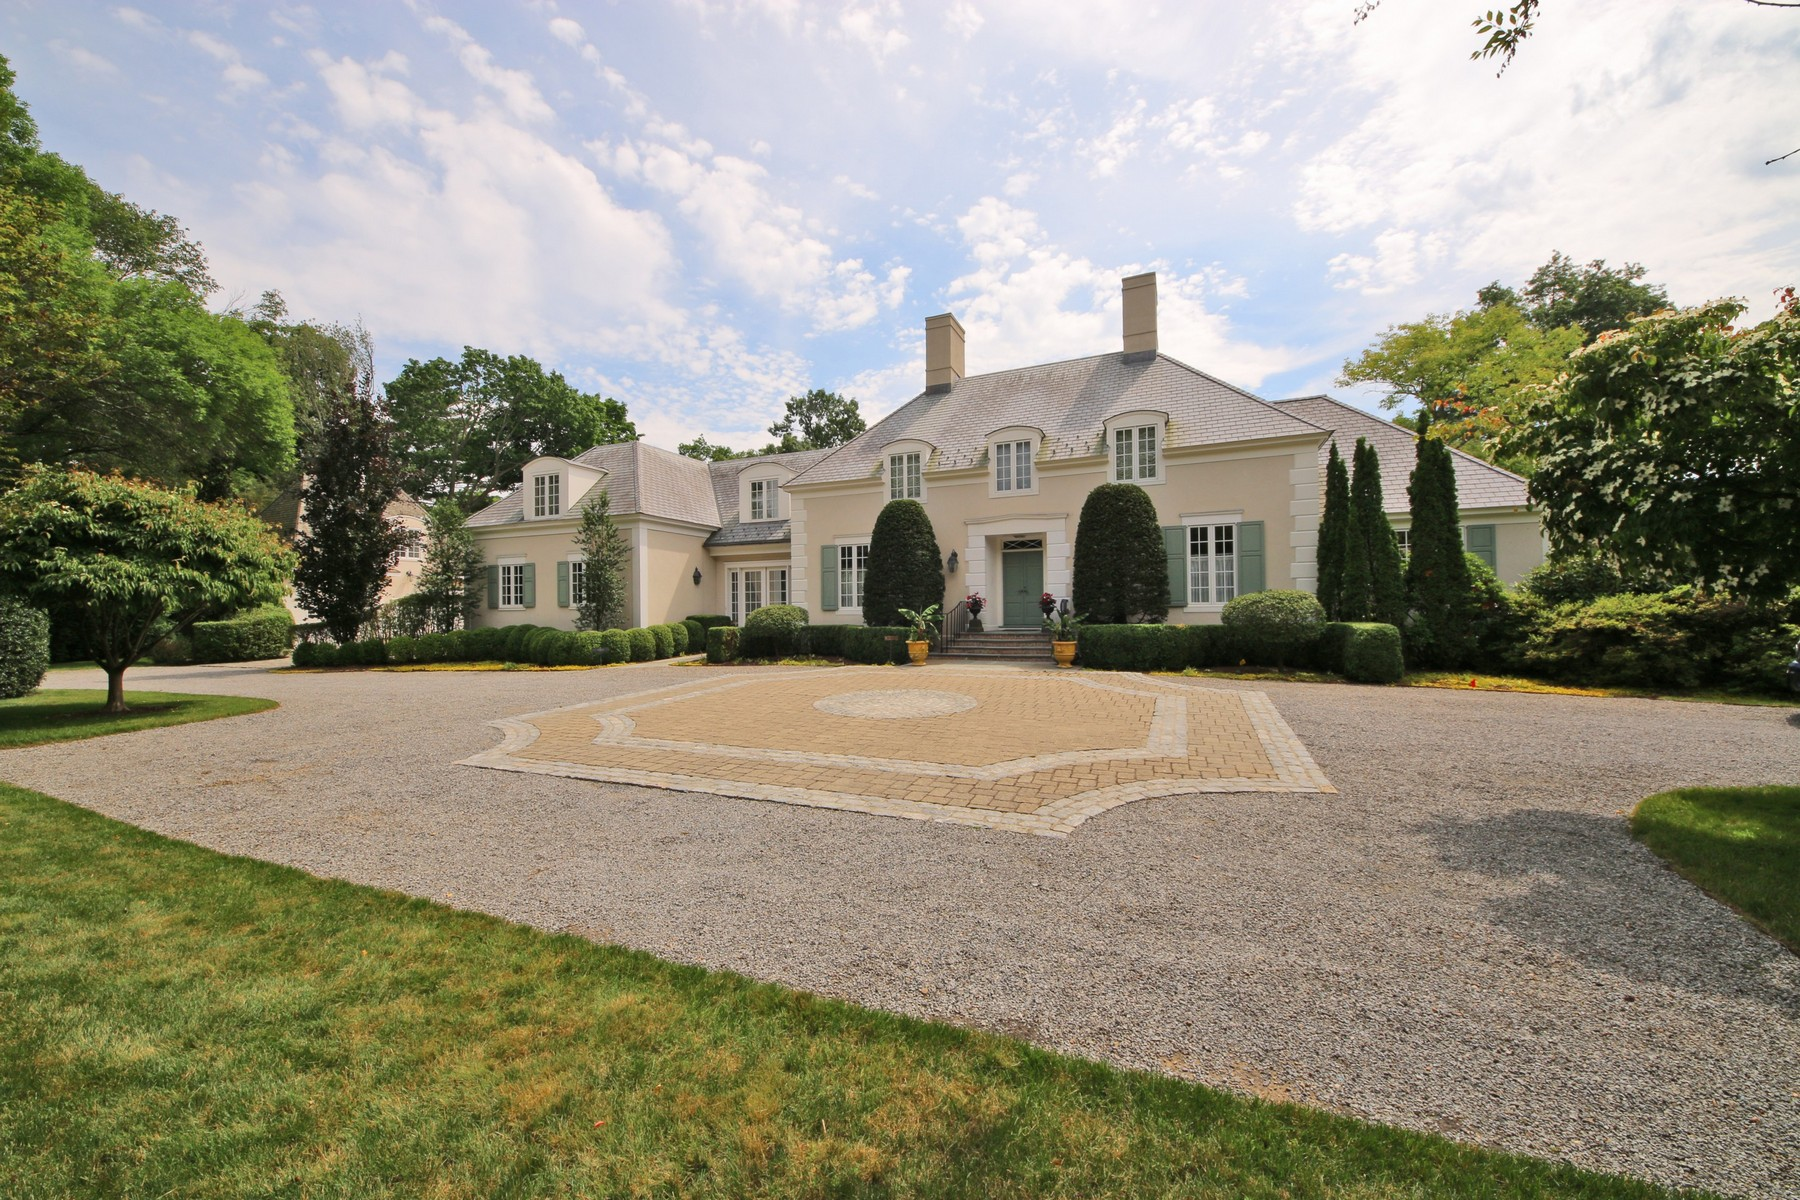 Single Family Home for Sale at French Country House in Southport 1011 Gunston Road Southport, Fairfield, Connecticut, 06890 United States